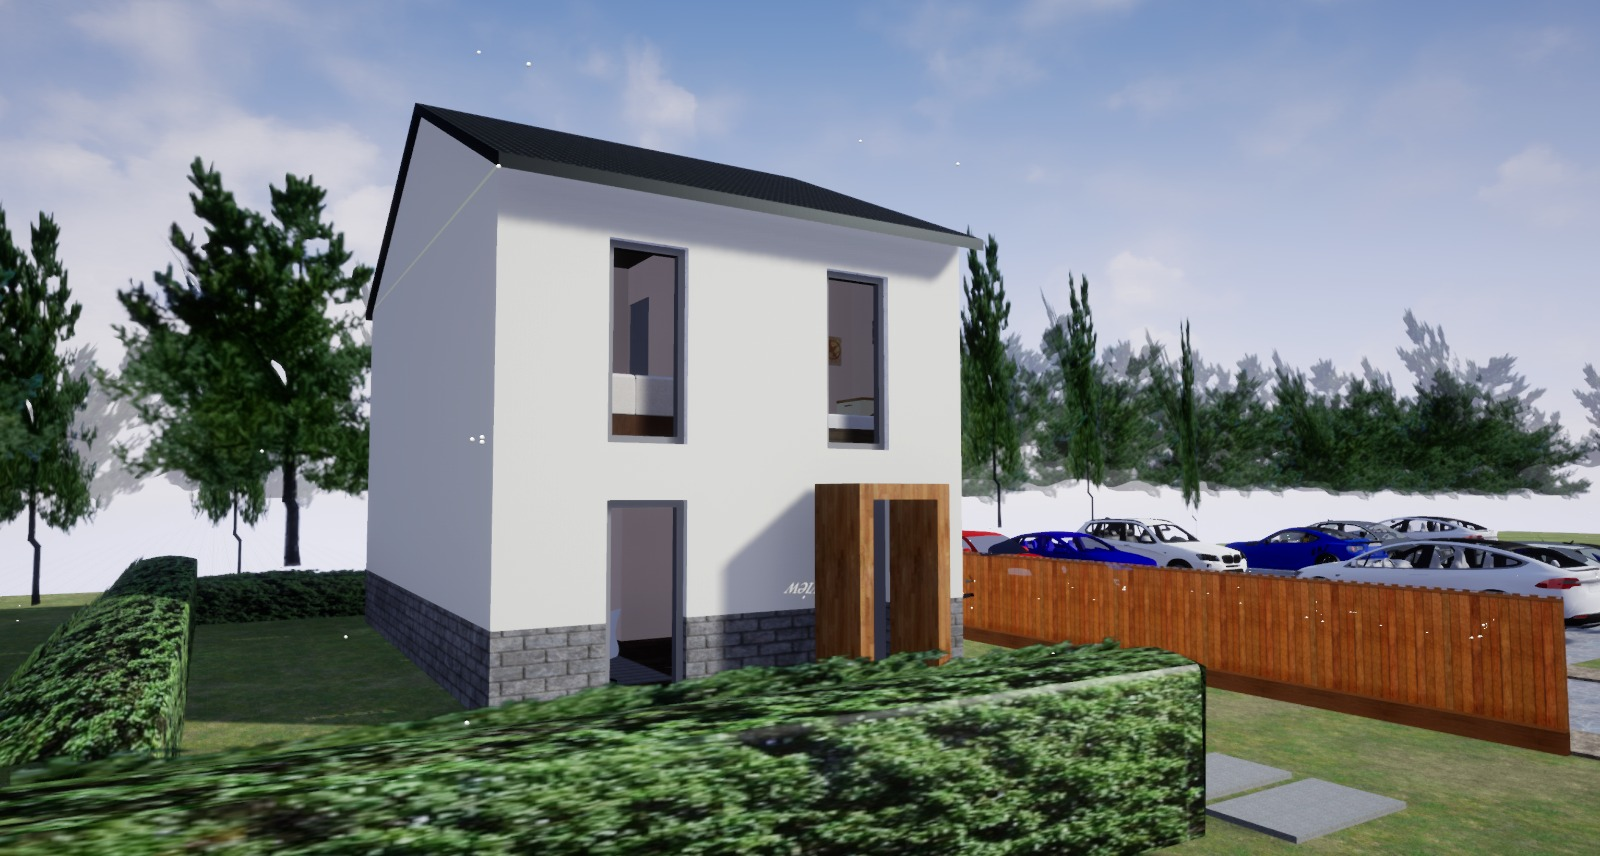 Modular house to be built in 20 hours